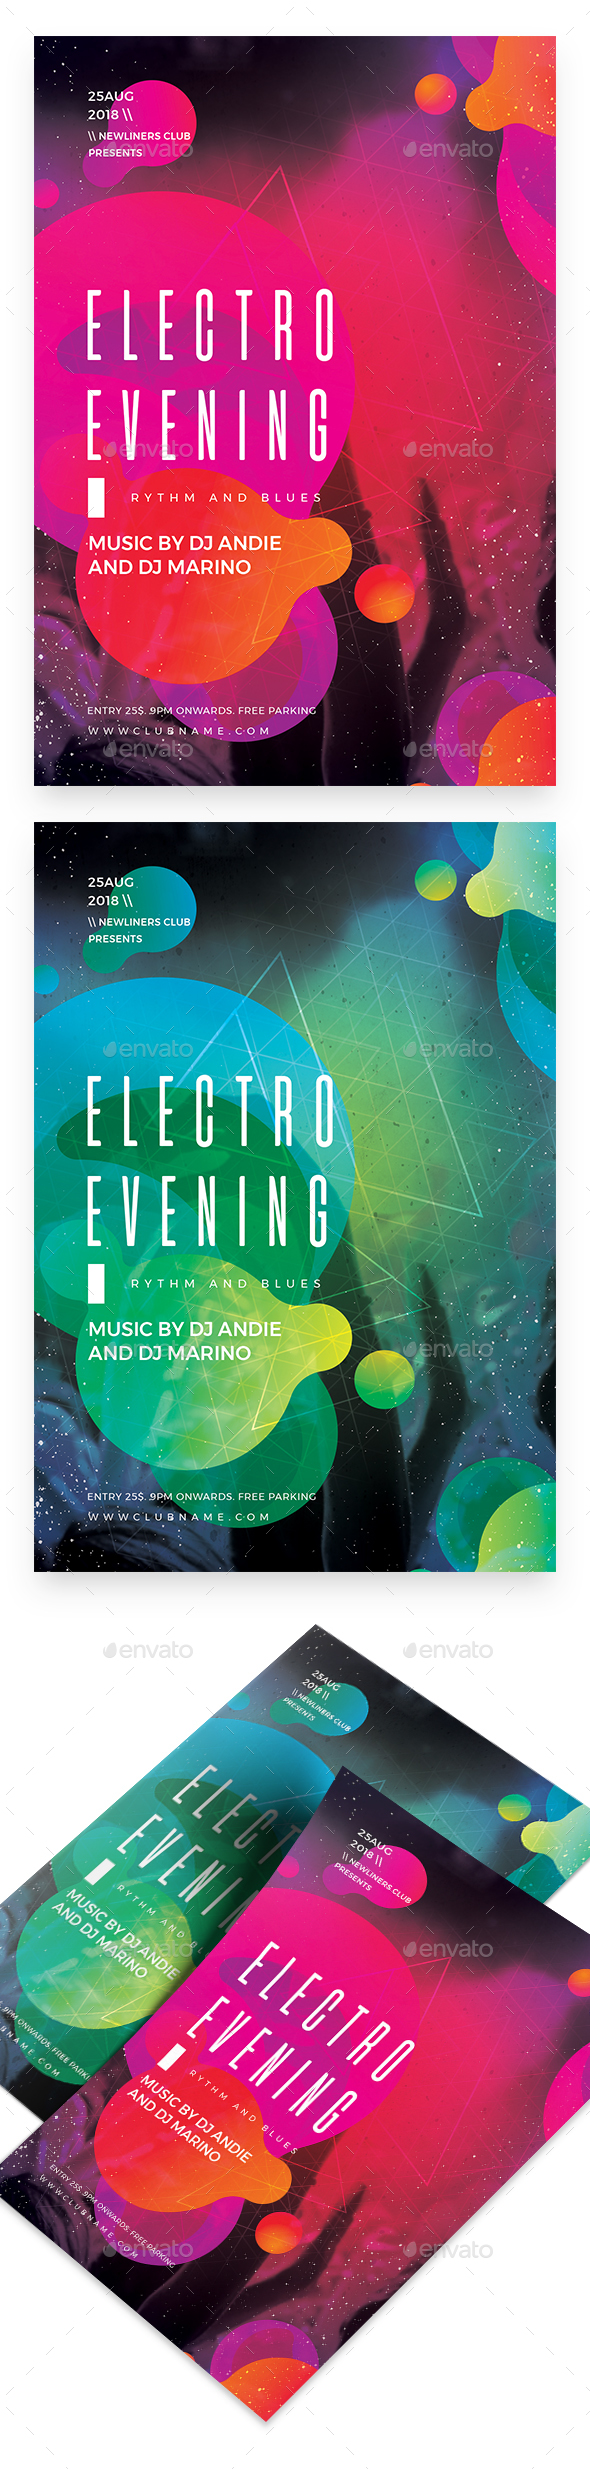 Electro Evening Party Flyer - Clubs & Parties Events